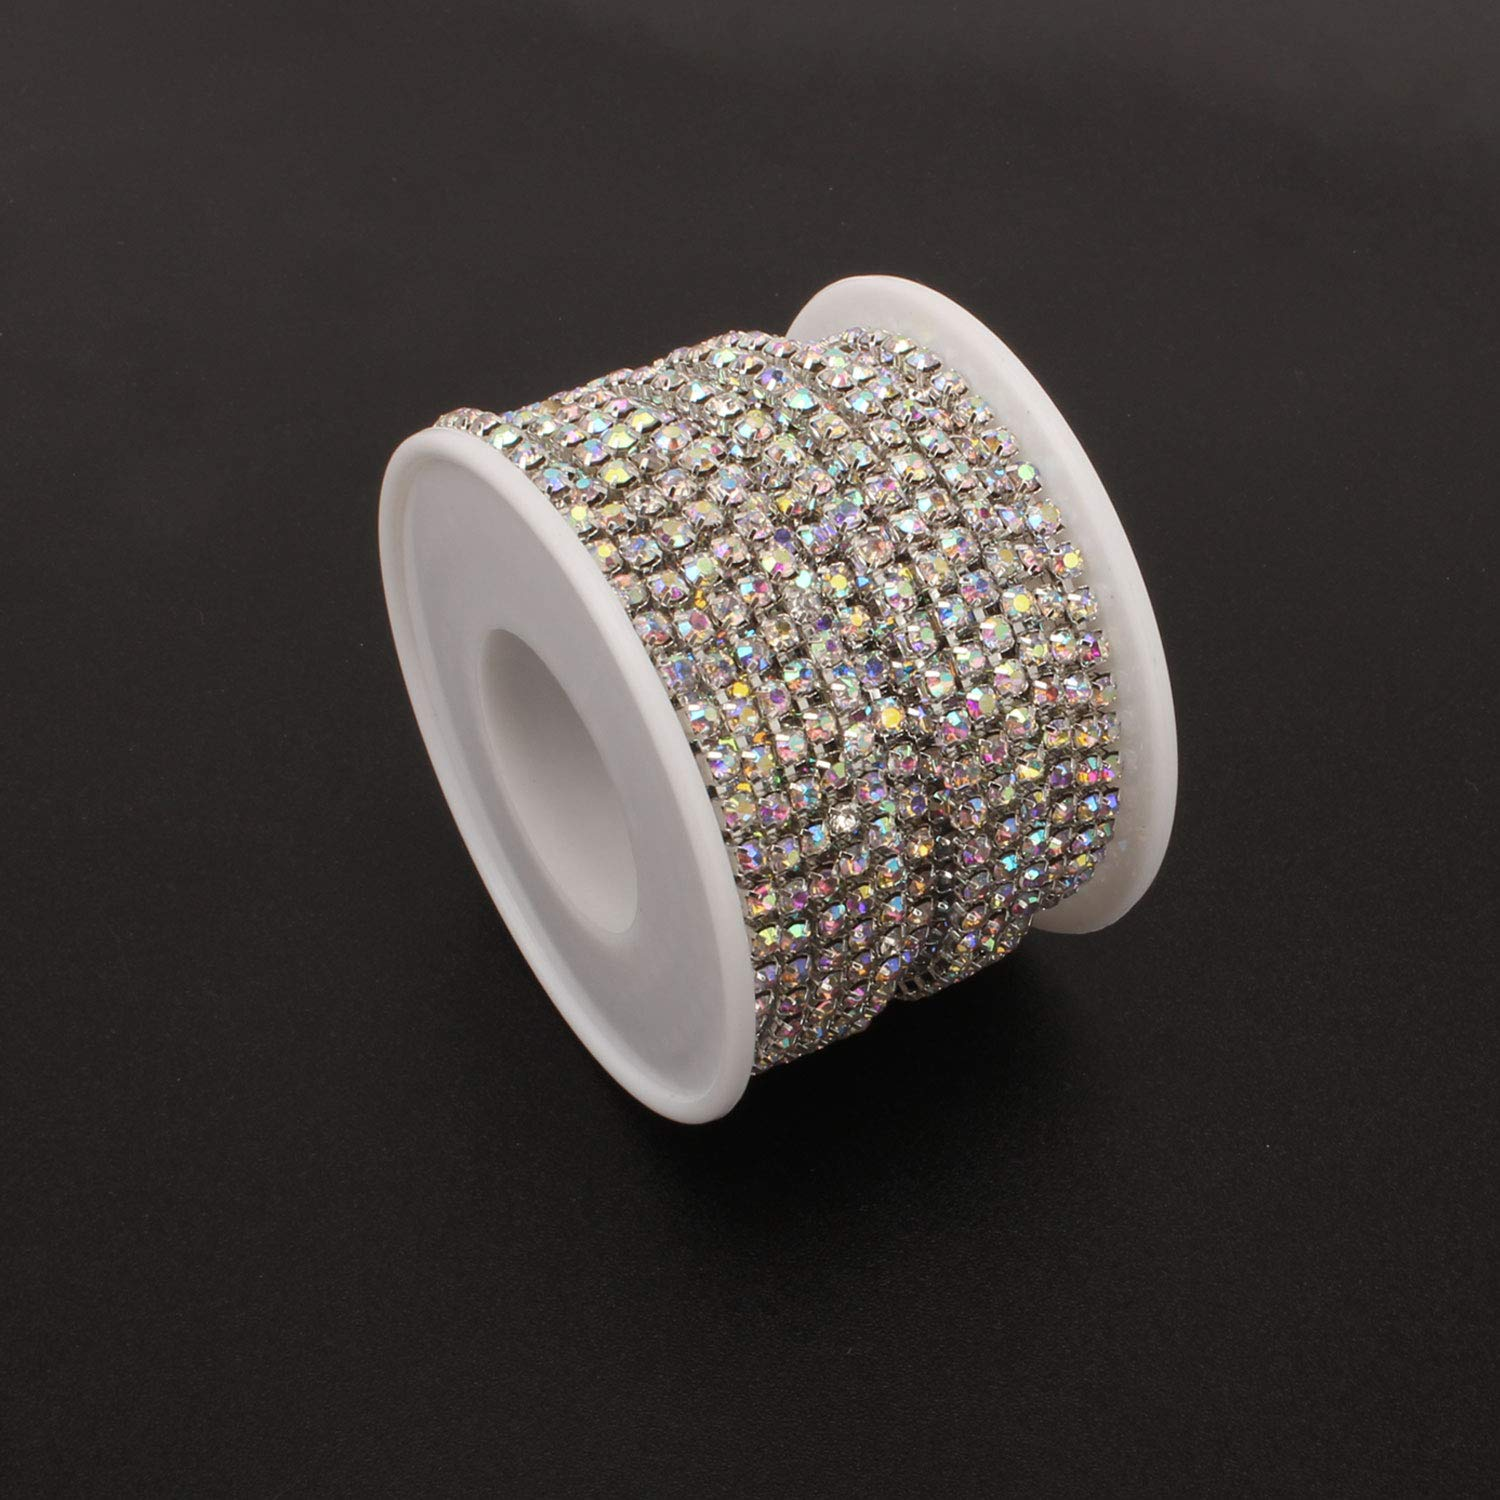 10Yard 3MM Colored Crystal Rhinestone Chain Close Trim Cup Chains Bulk for Craft Jewelry Making Multicolored